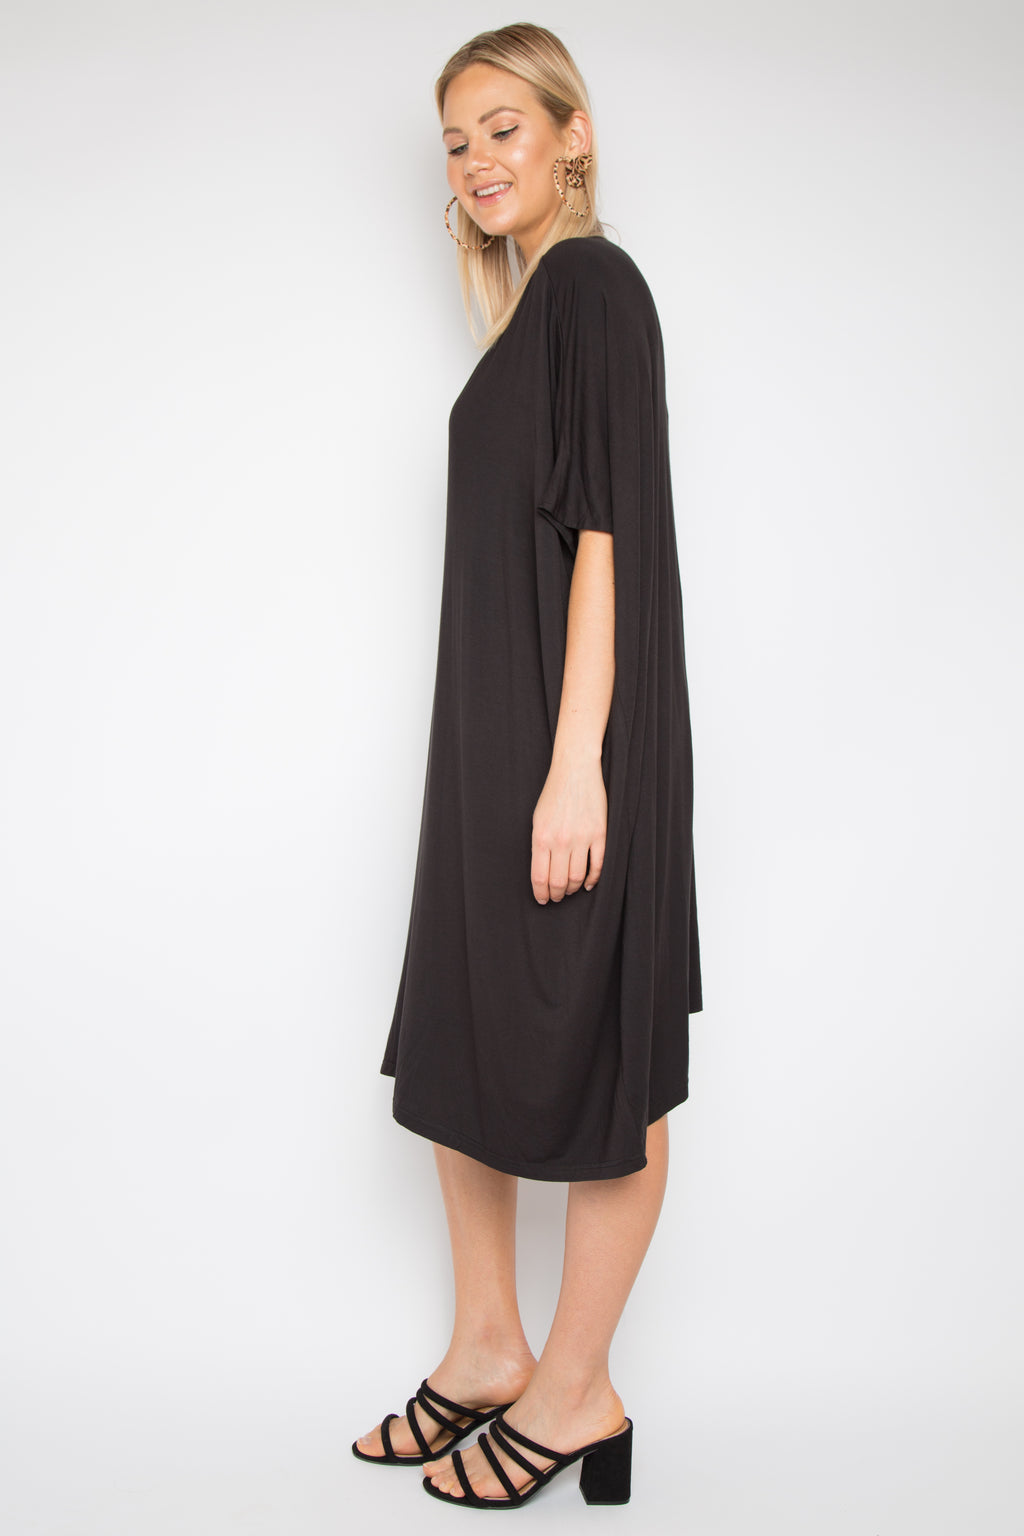 A Nice Dress in Black (bamboo)